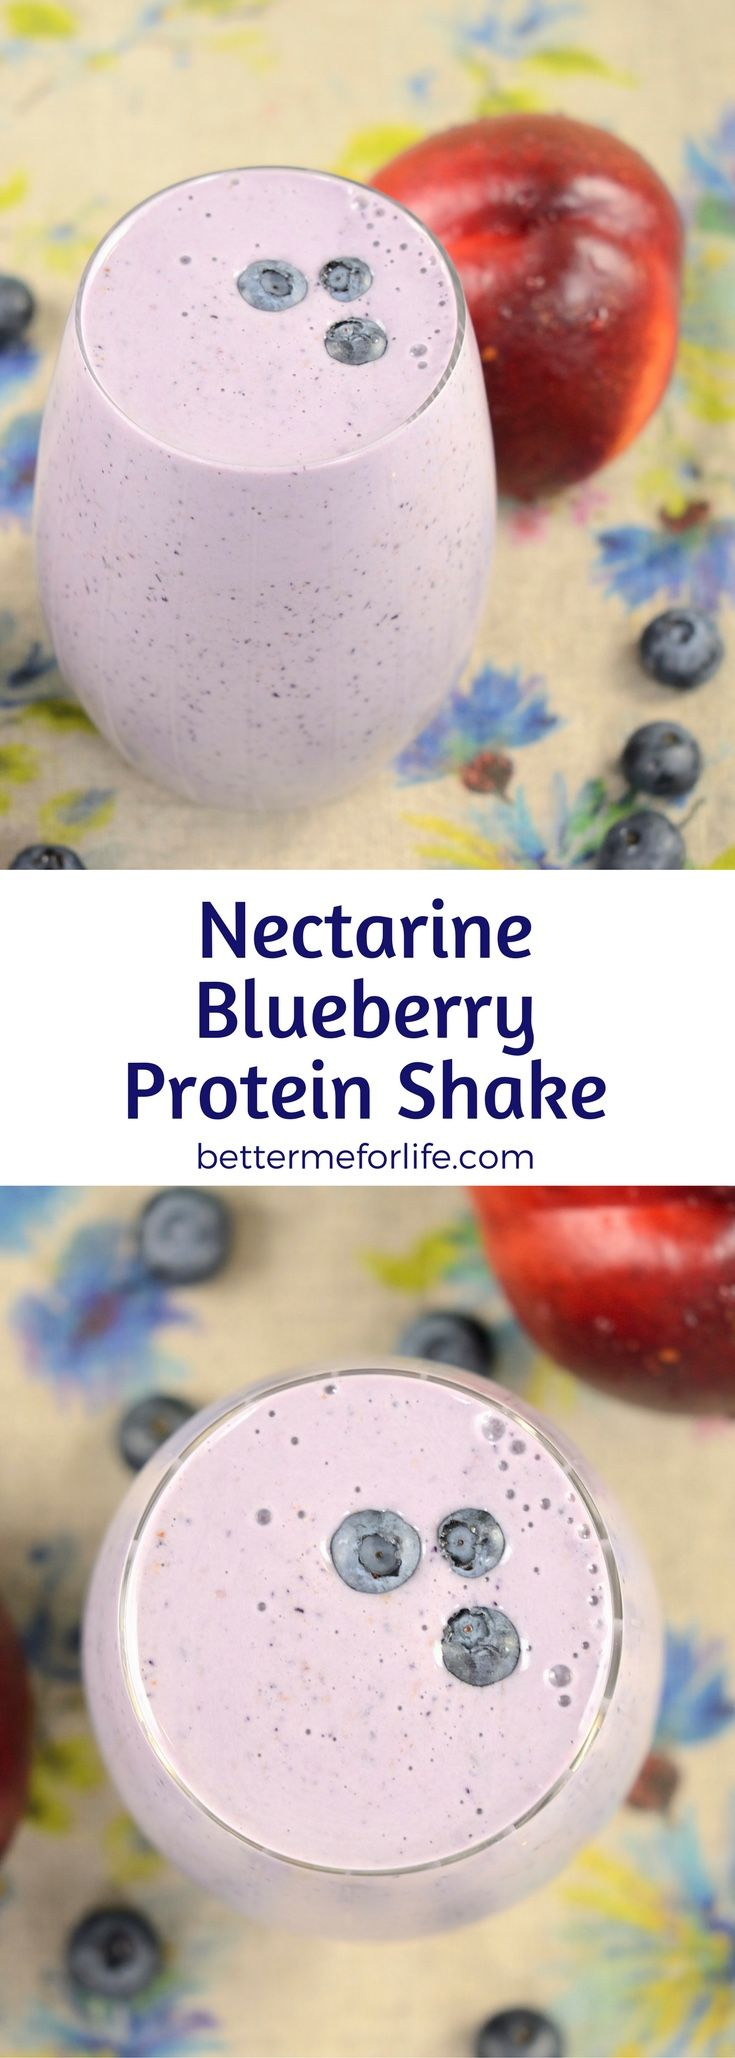 This nectarine blueberry flax protein shake is low in calories and high in fiber - making it the perfect weight loss shake. Find the recipe on BetterMeforLife.com | protein shake recipes | protein shakes | healthy protein shakes | protein shakes for weight loss | protein shake recipes weight loss | protein shake recipes diet #proteinshakes #proteinshakerecipes #proteinpowder #proteinshake #protein_shake